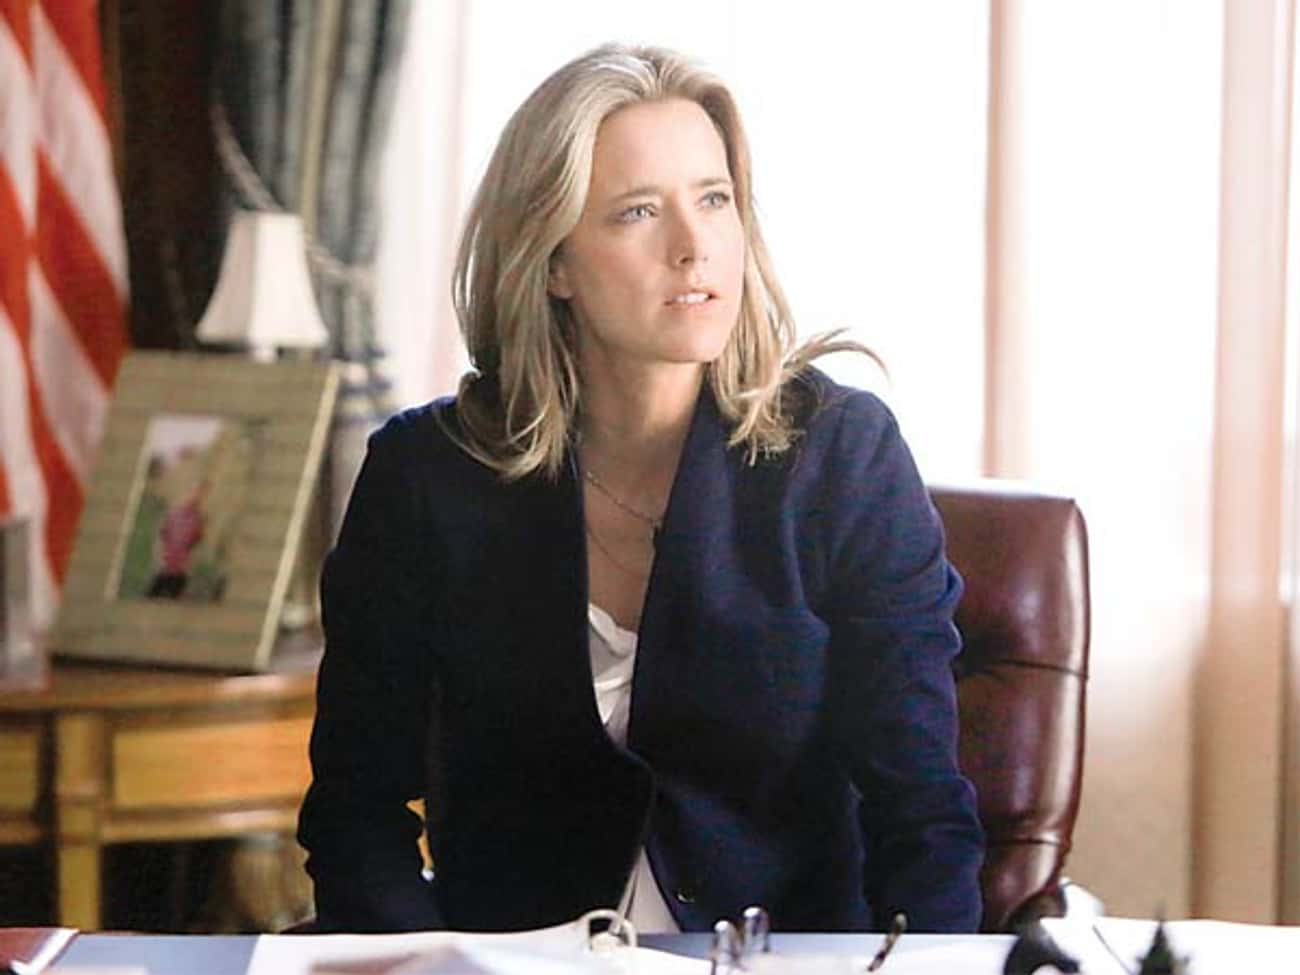 Madam Secretary is listed (or ranked) 2 on the list What to Watch If You Love 'Blue Bloods'